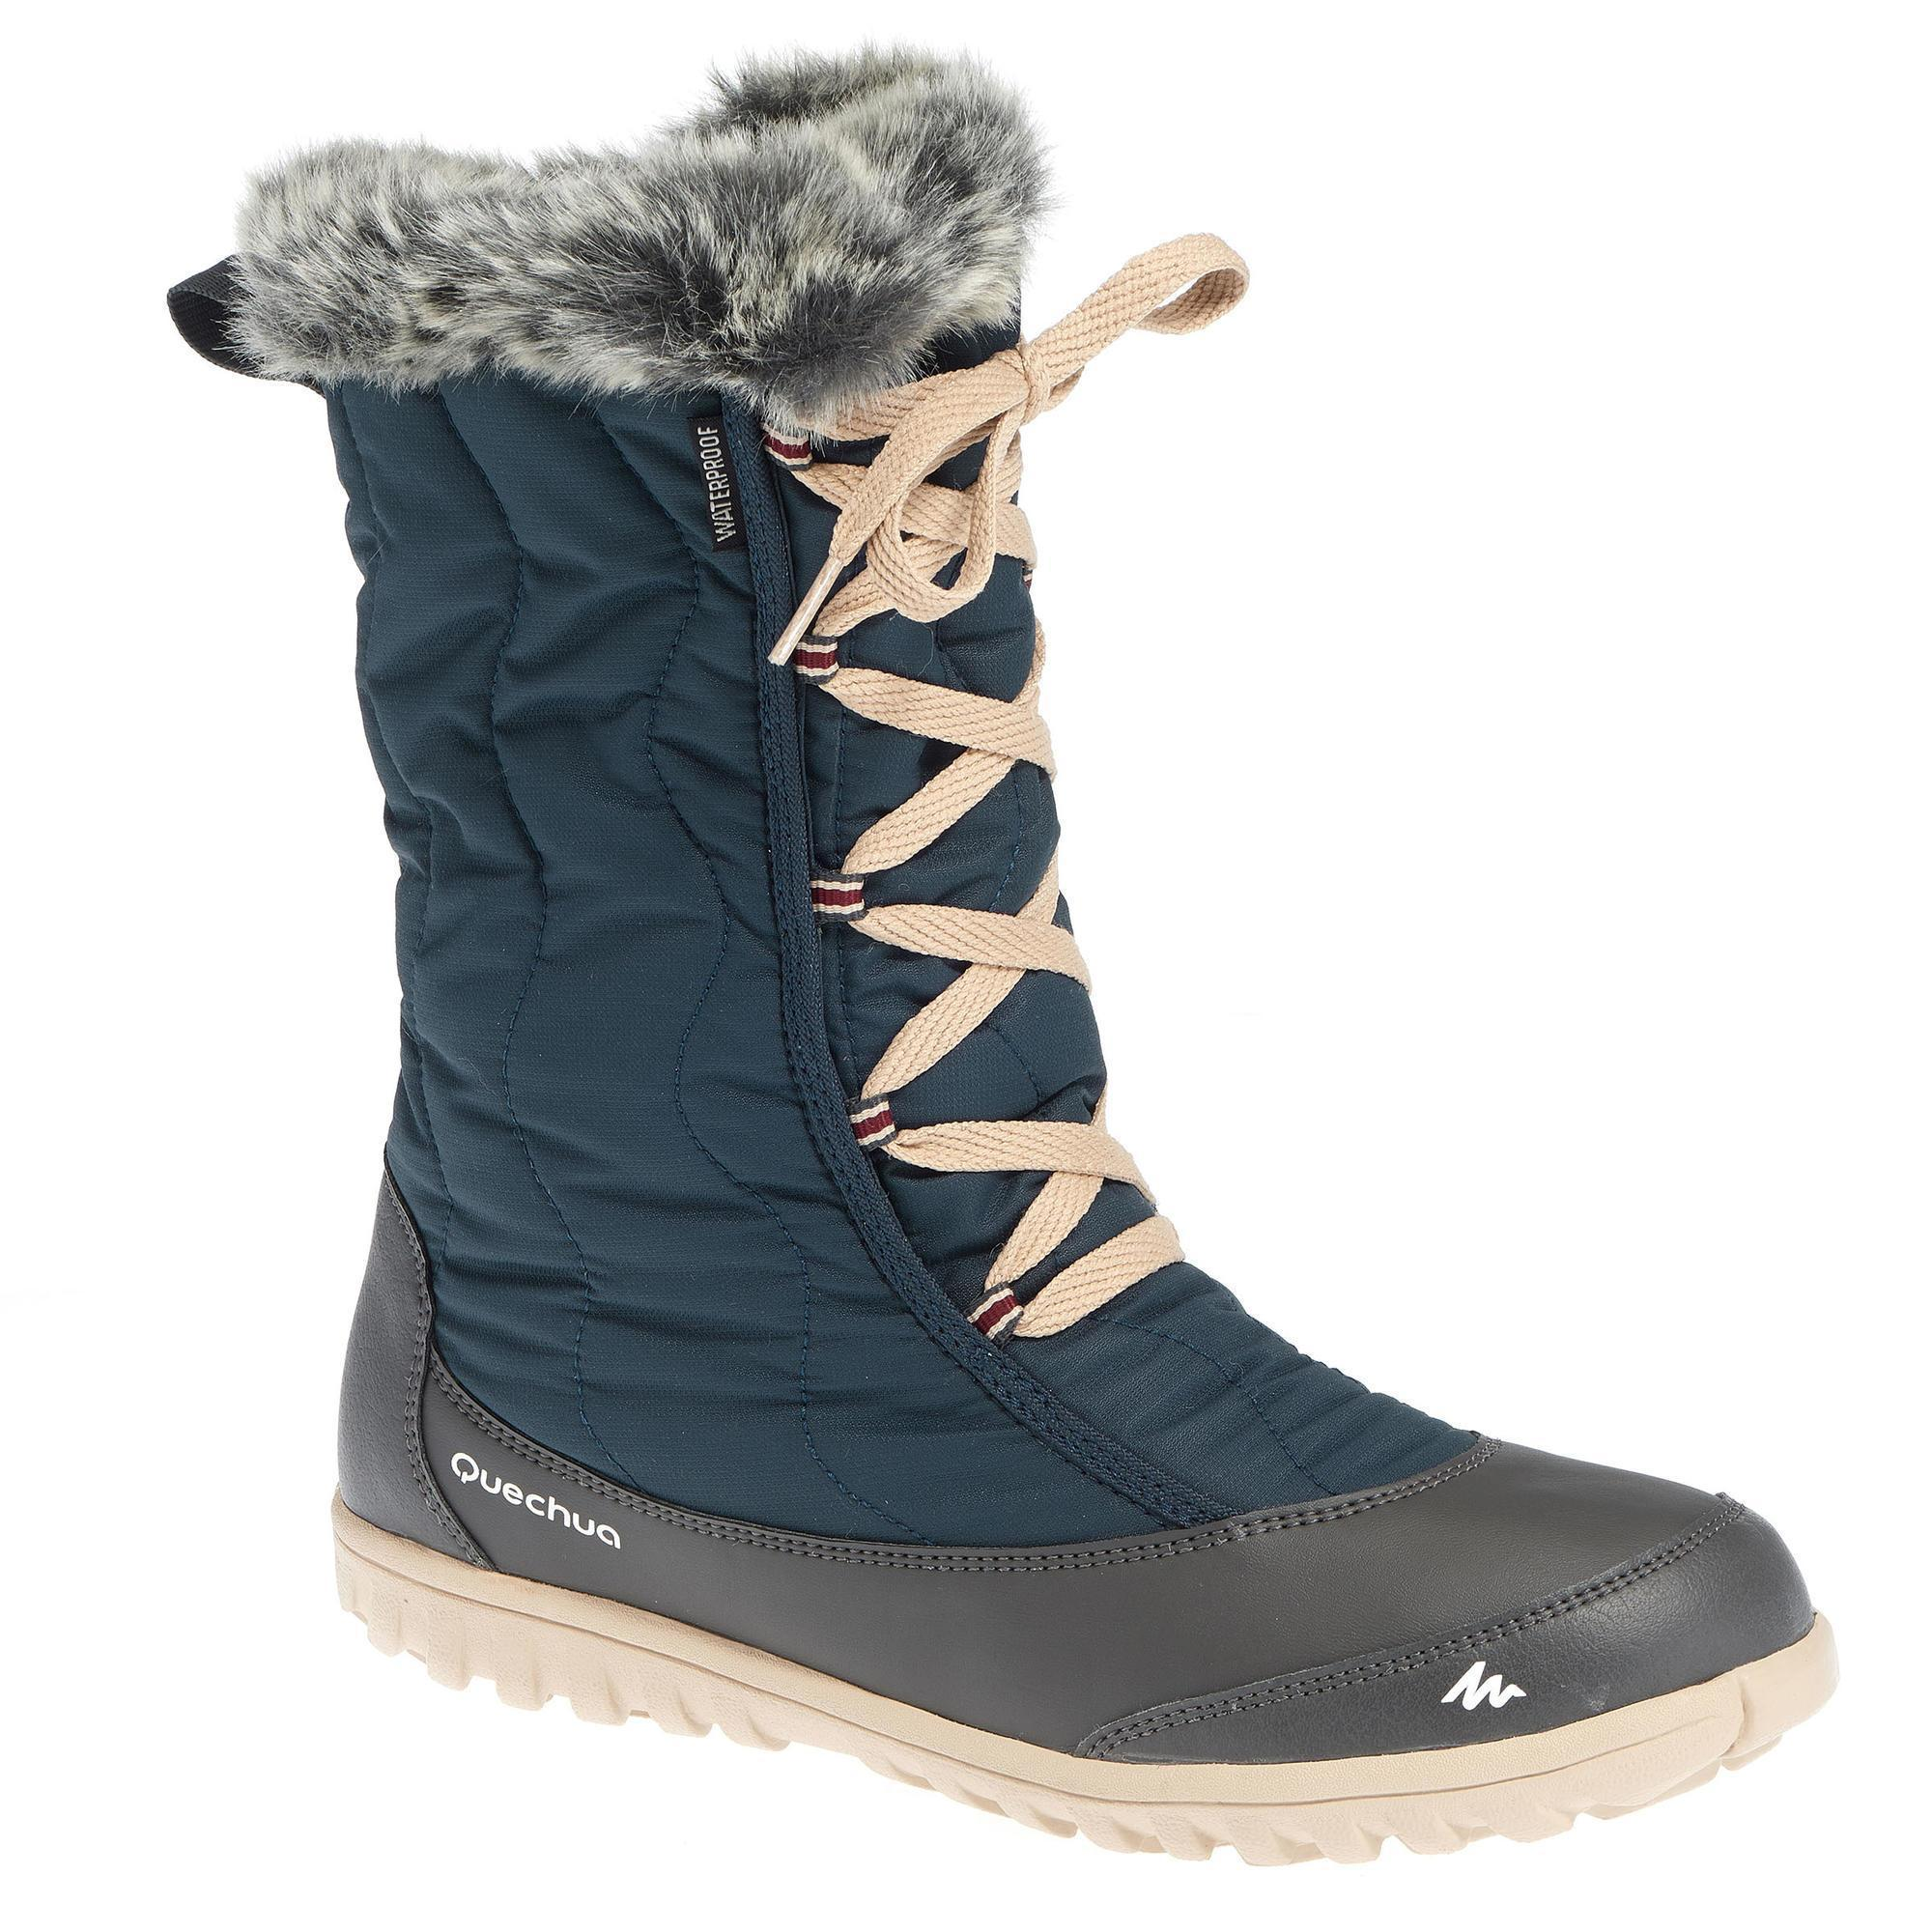 SH900 Women's Warm and Waterproof Snow Hiking Boots